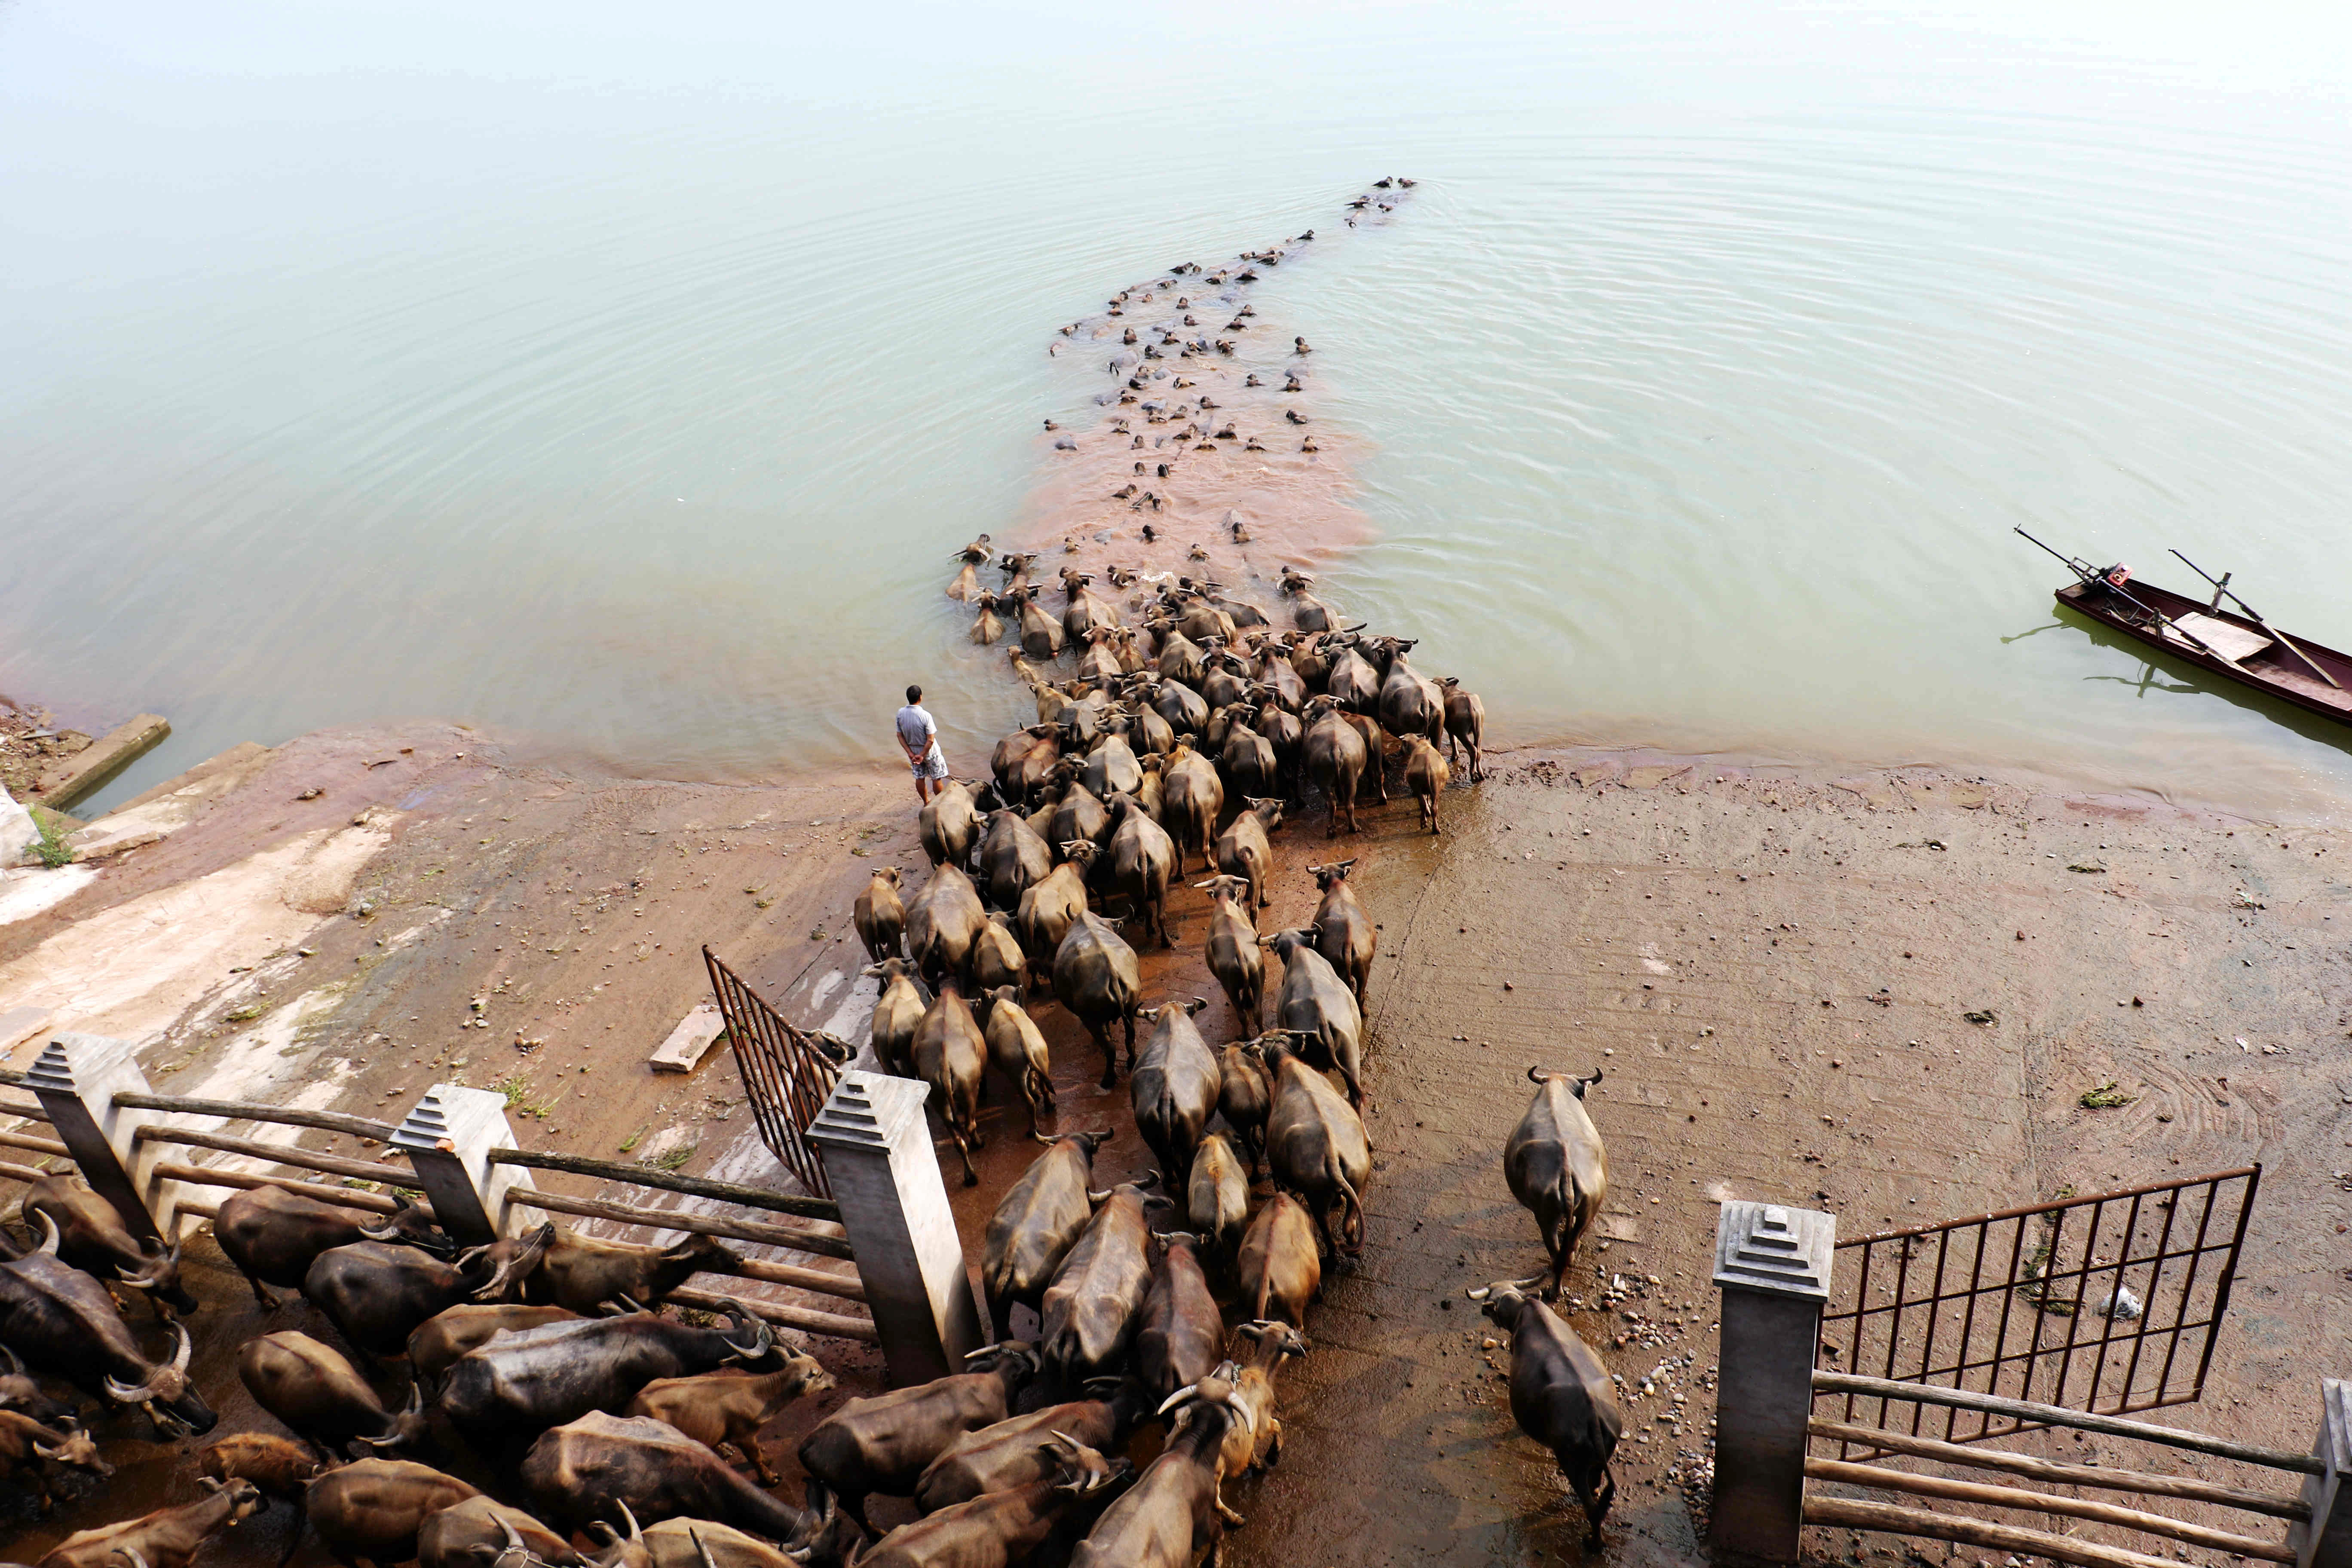 A man watches buffalos cross a river as they head to another grazing area in Nanchong, China, on Aug. 10, 2016.